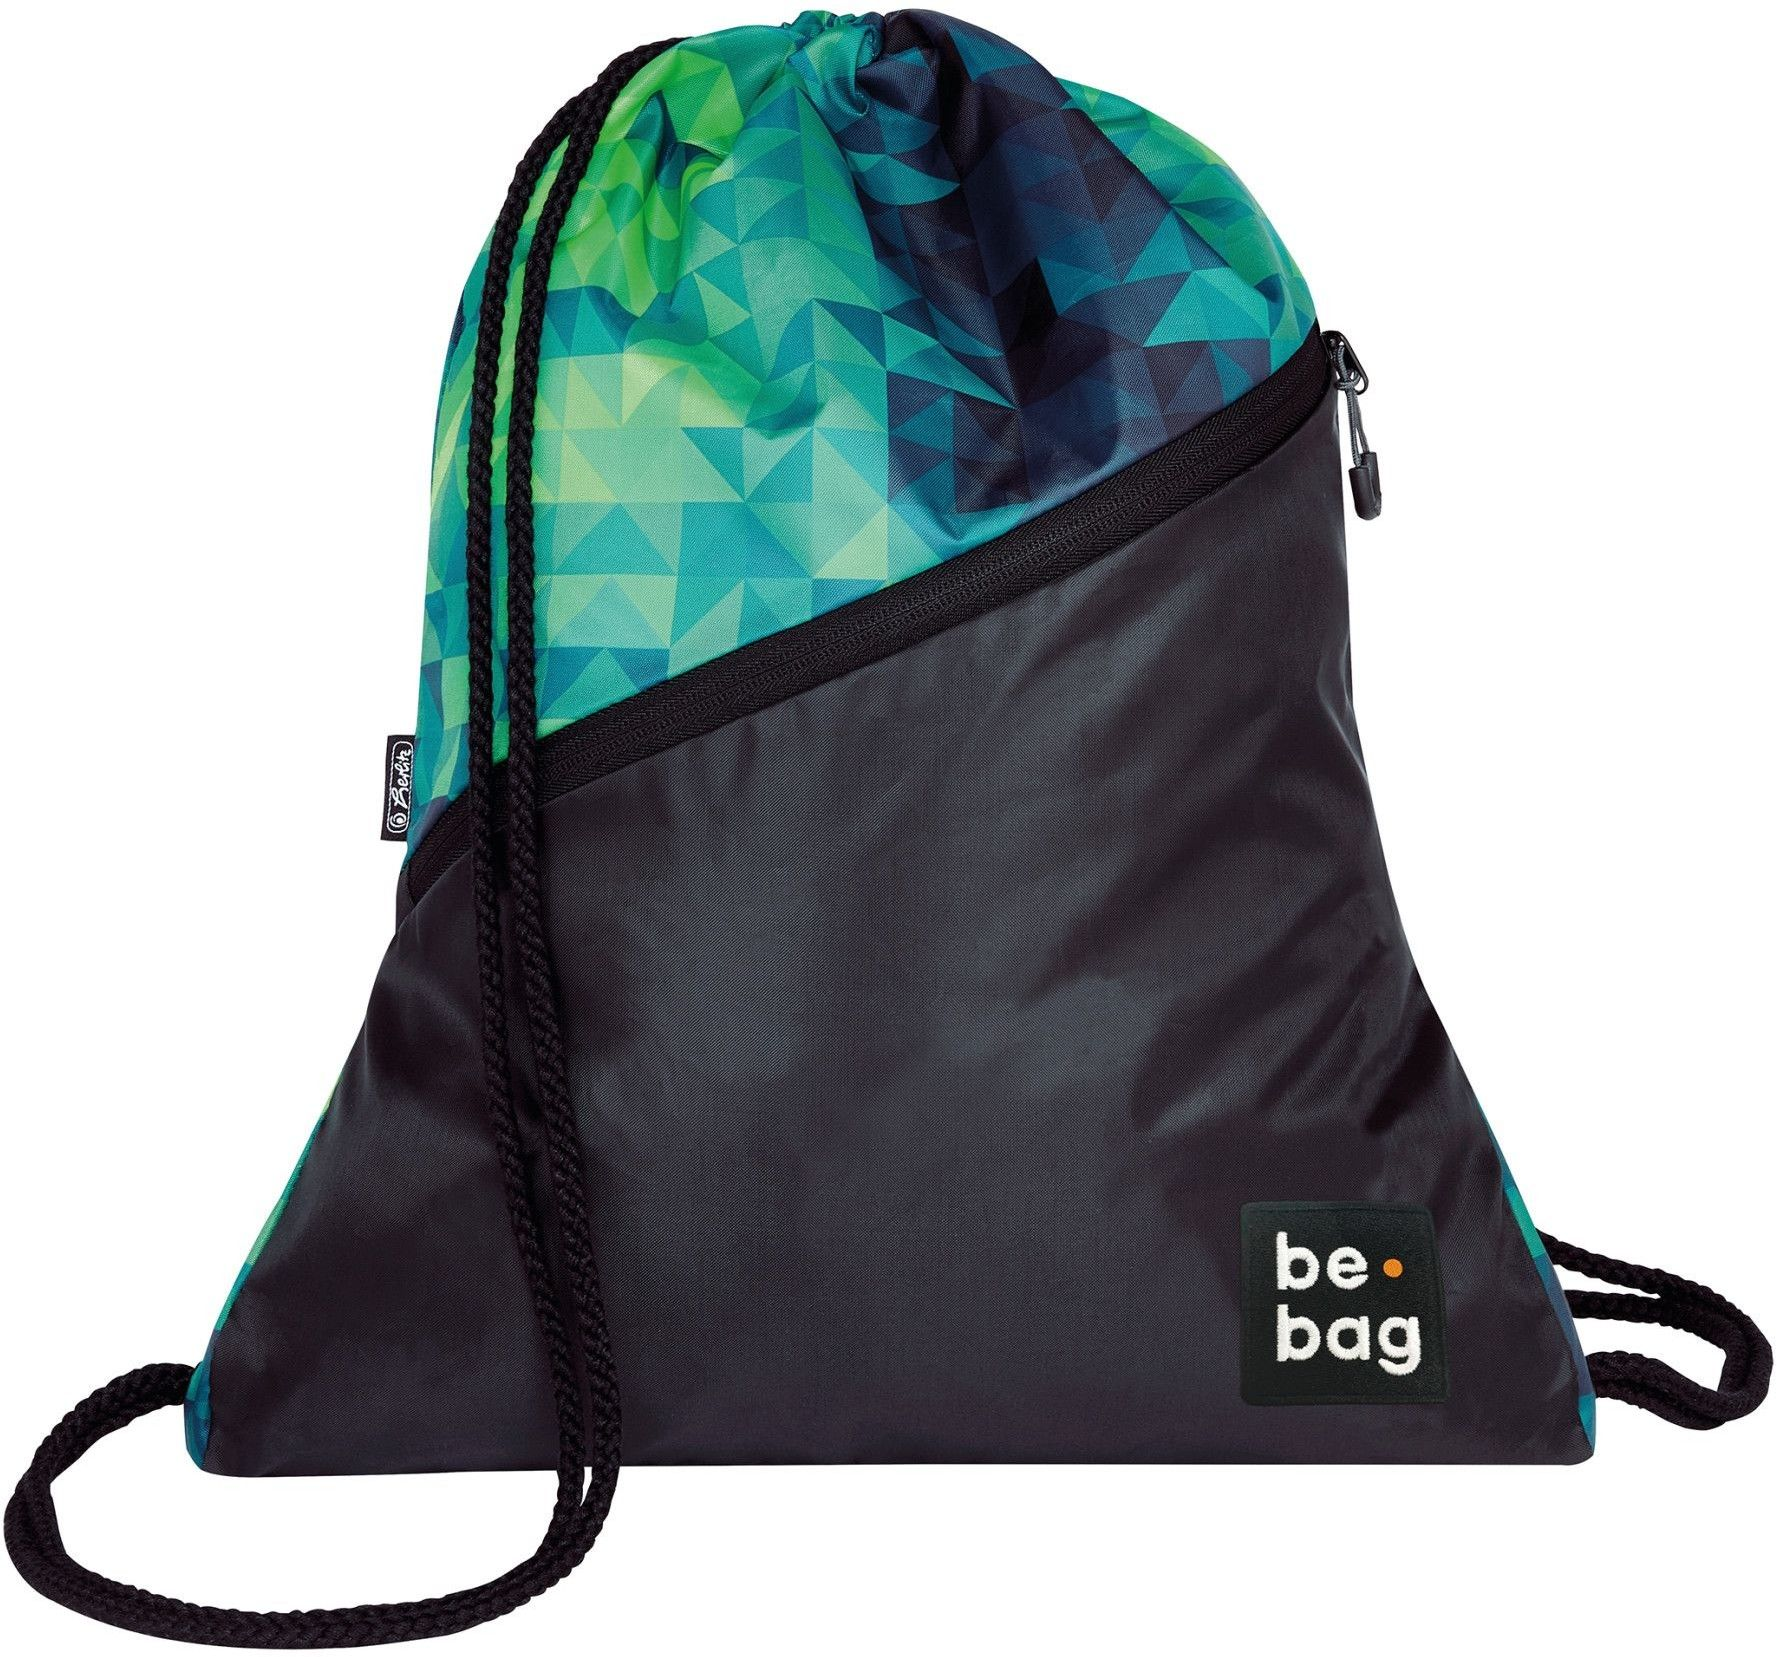 Worek na buty sportowy BE BAG BE DAILY MAGIC TRAING HERLITZ /0024800334/